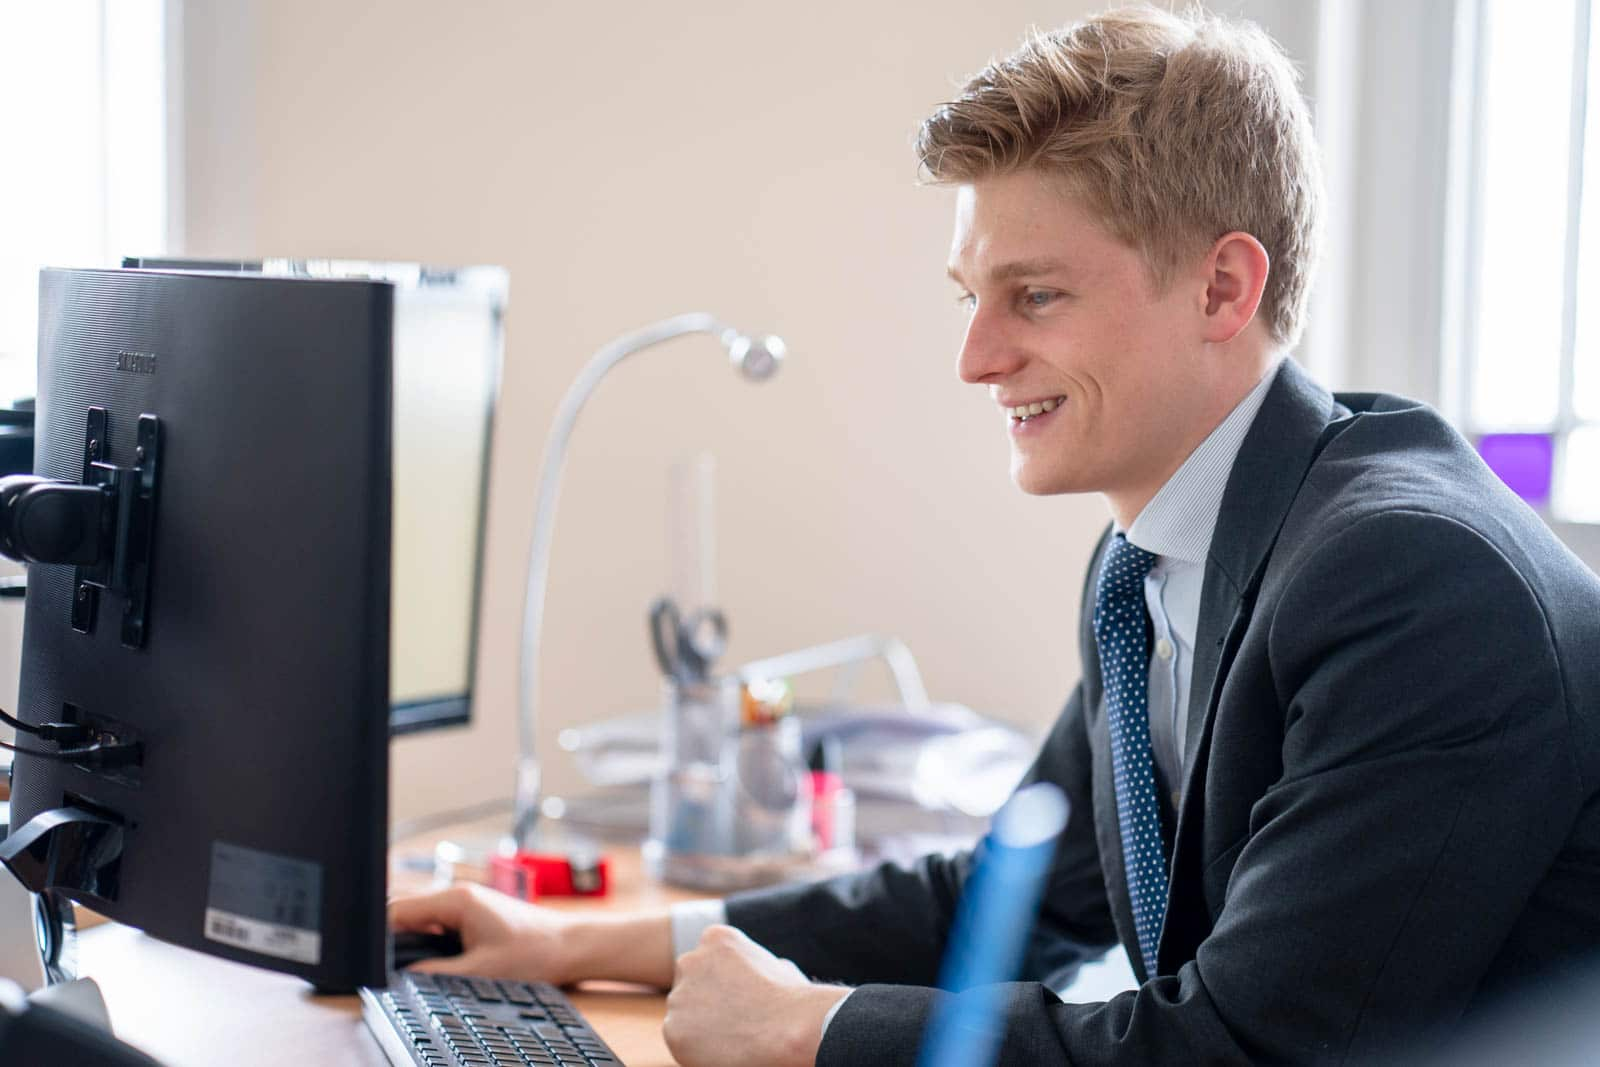 man in suit sat at a desk smiling at the computer screen